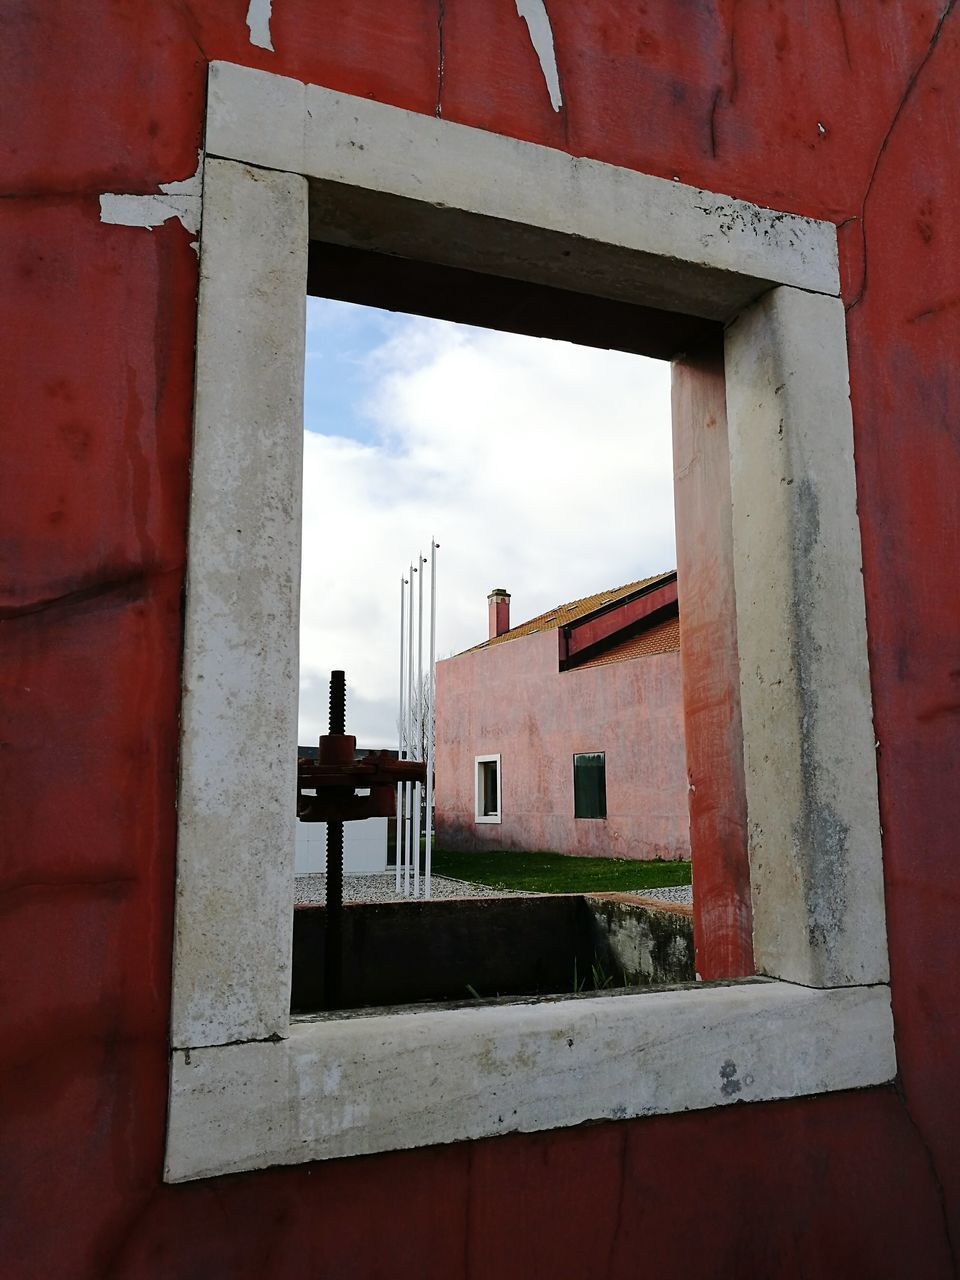 architecture, window, built structure, building exterior, red, day, no people, outdoors, sky, close-up